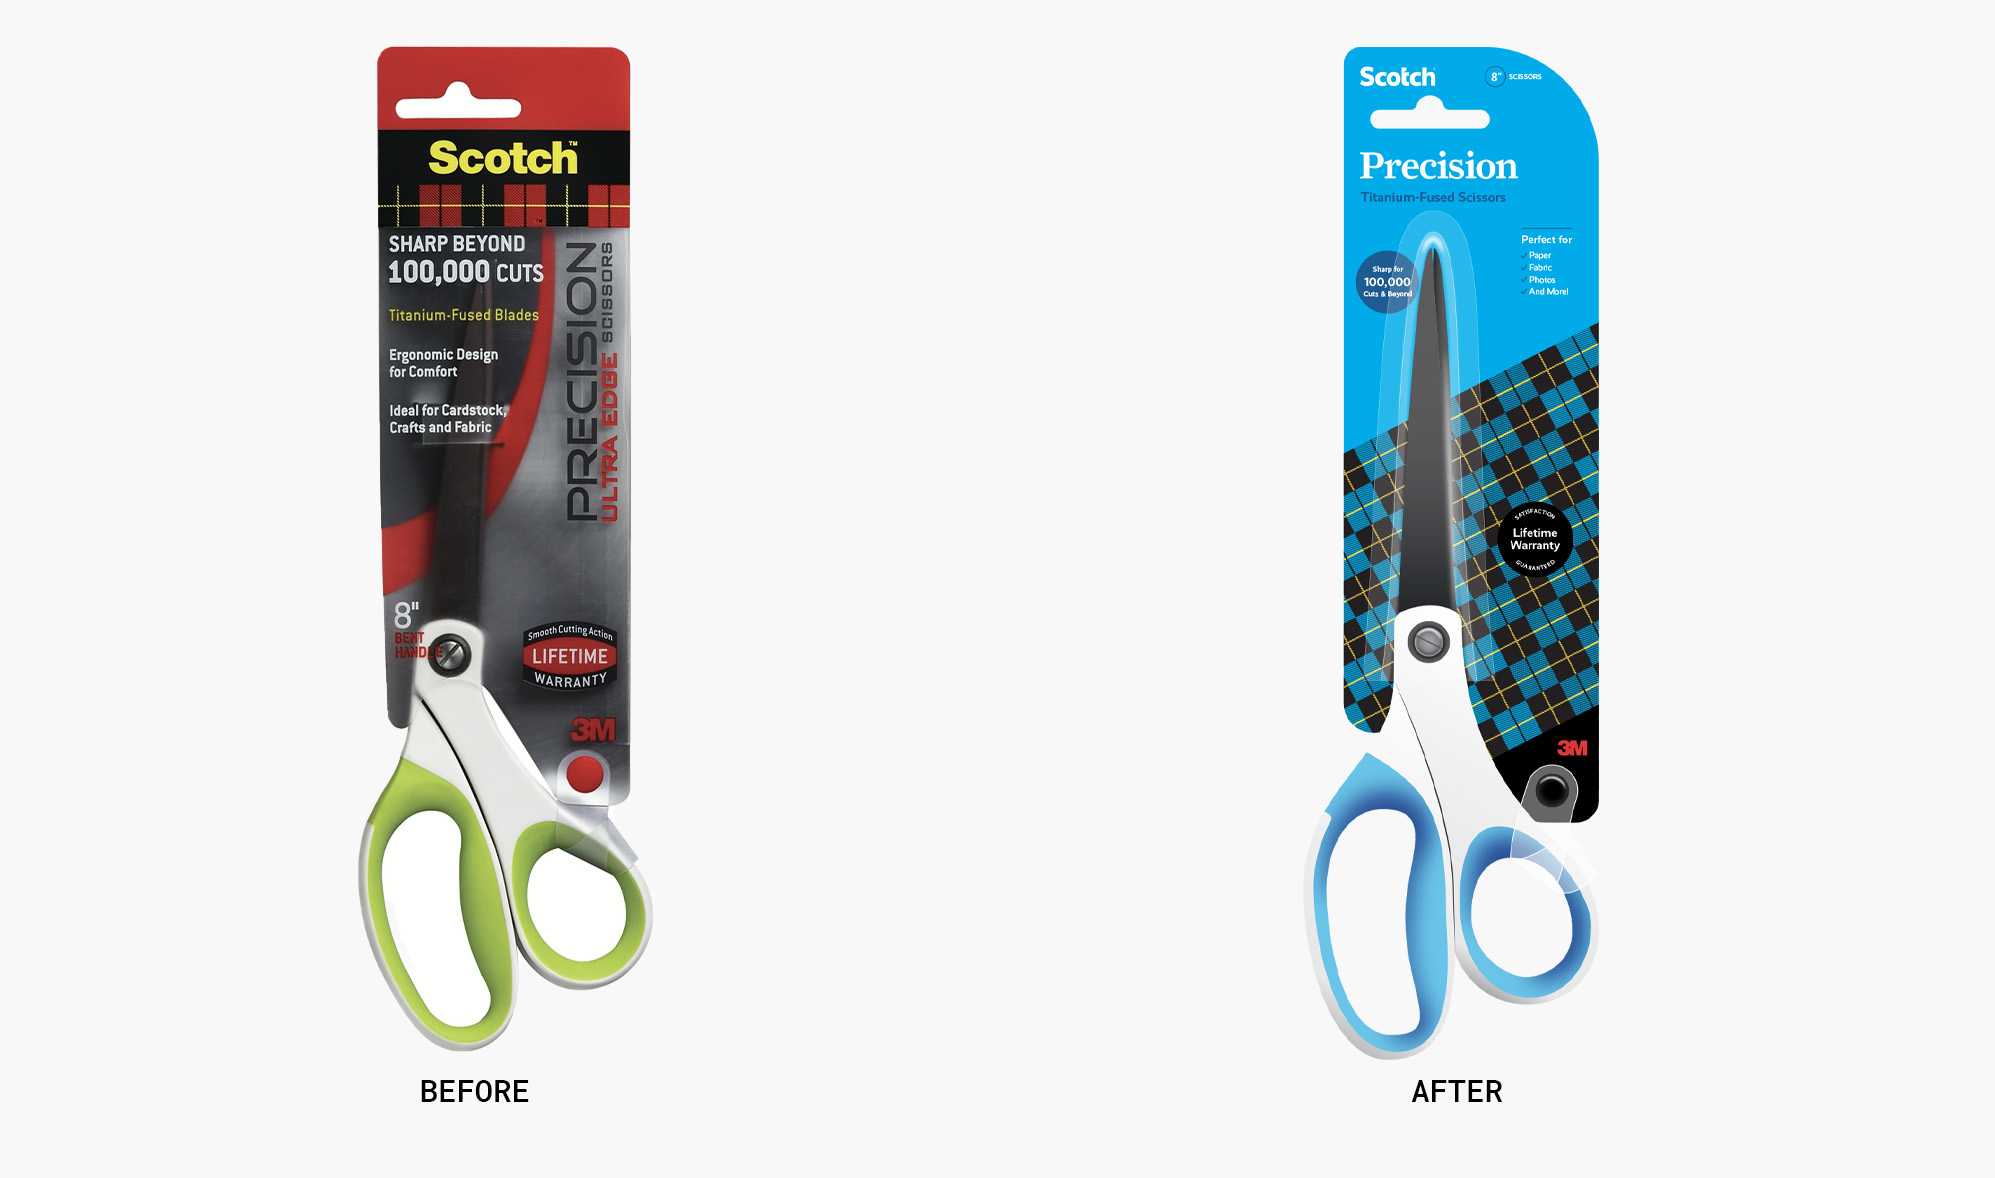 Before and after of Scotch's scissor packaging